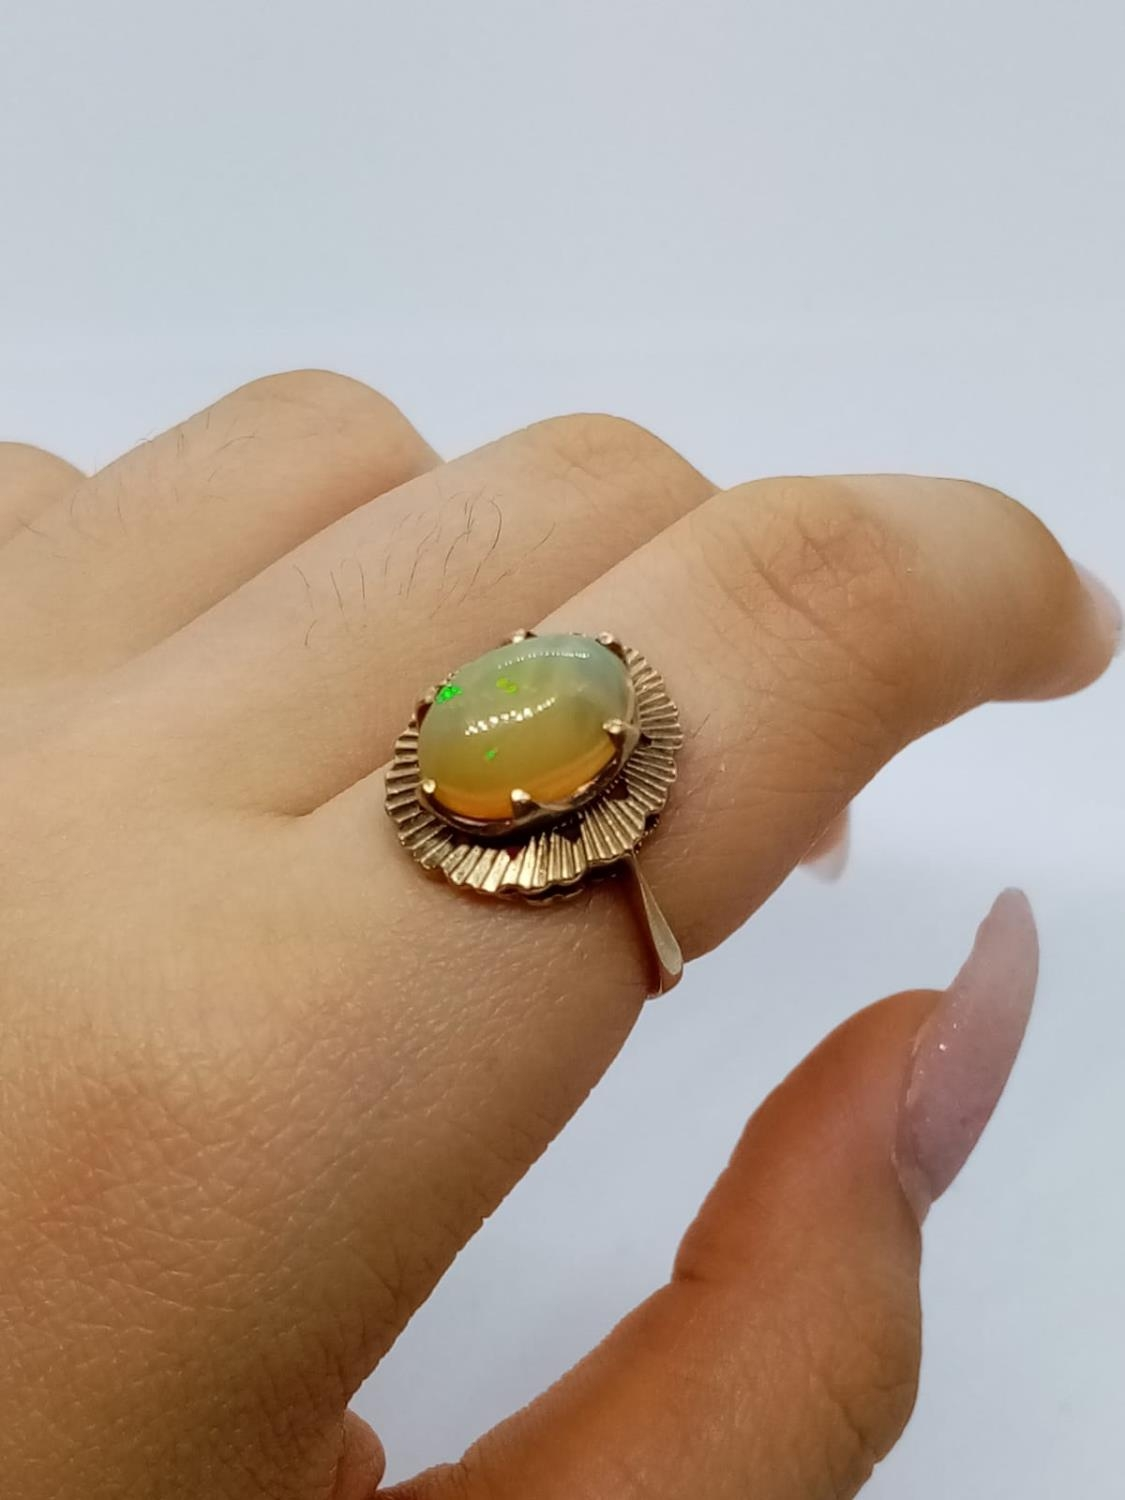 Fine Opal set in 9 cg Gold RING. 3.0g Size M. - Image 5 of 6